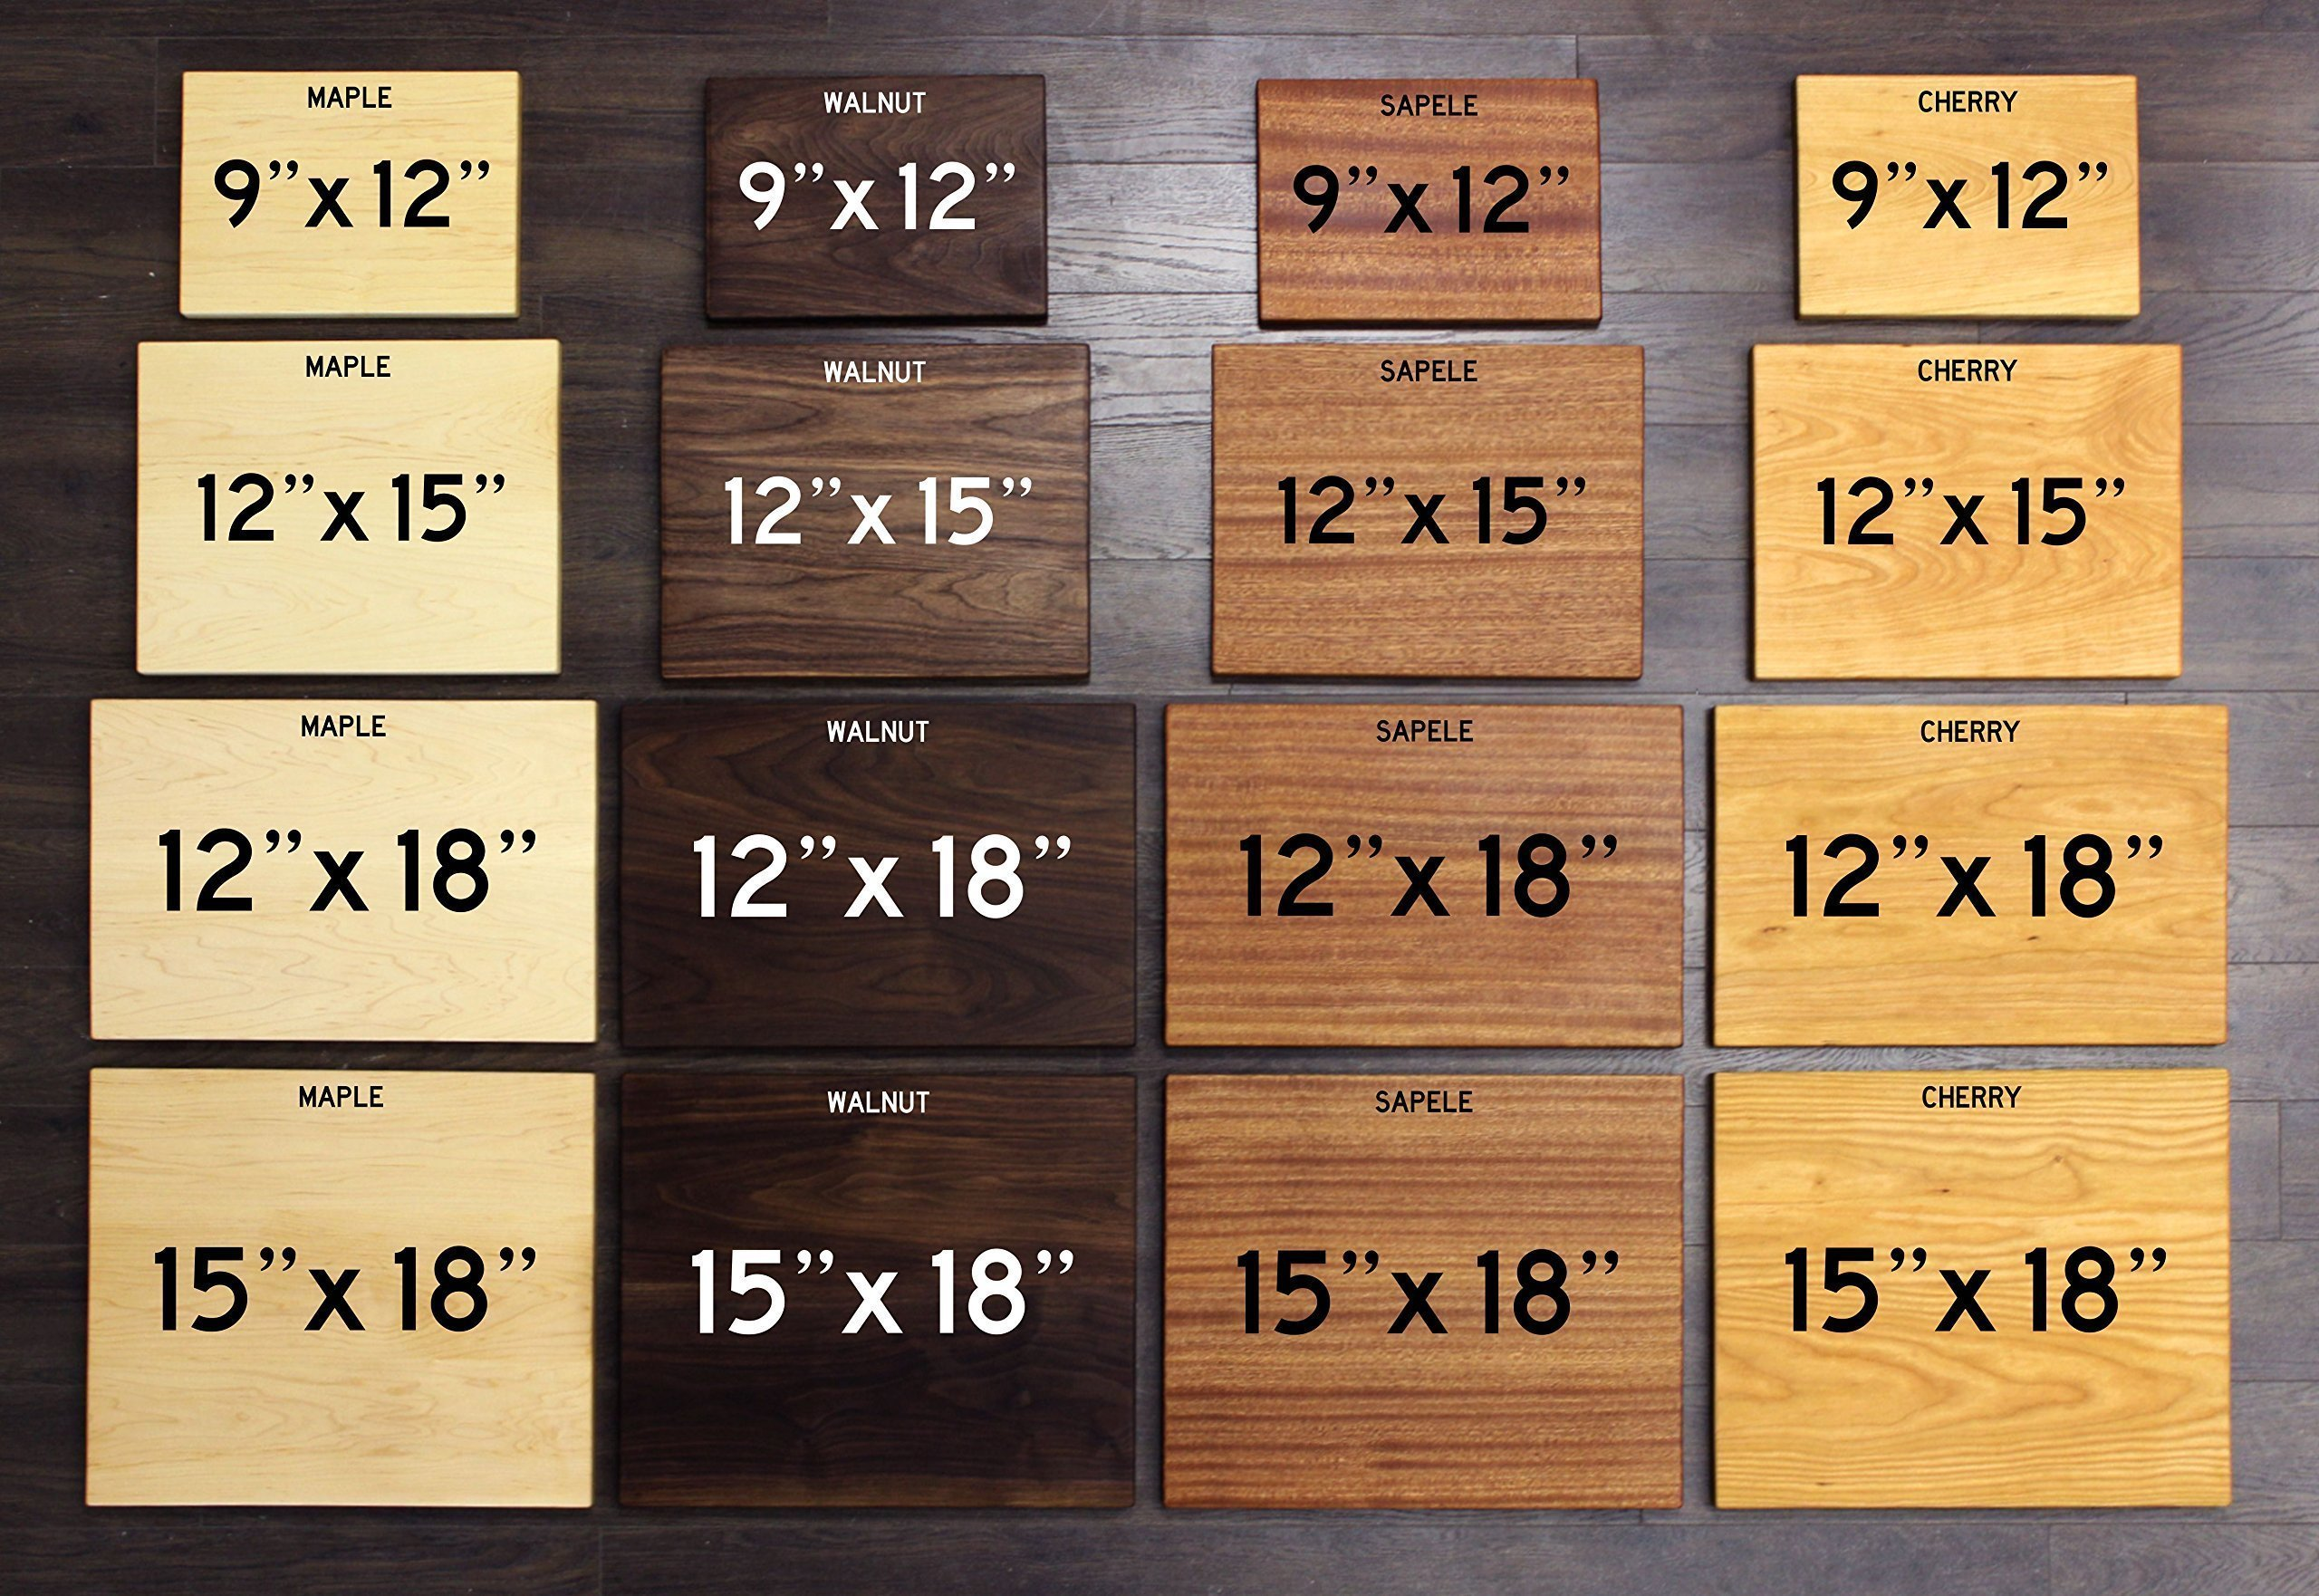 Personalized Cutting Board, Custom Keepsake, Engraved Serving Cheese Plate, Wedding, Anniversary, Engagement, Housewarming, Birthday, Corporate, Closing Gift #402 by Straga Cutting Boards (Image #3)